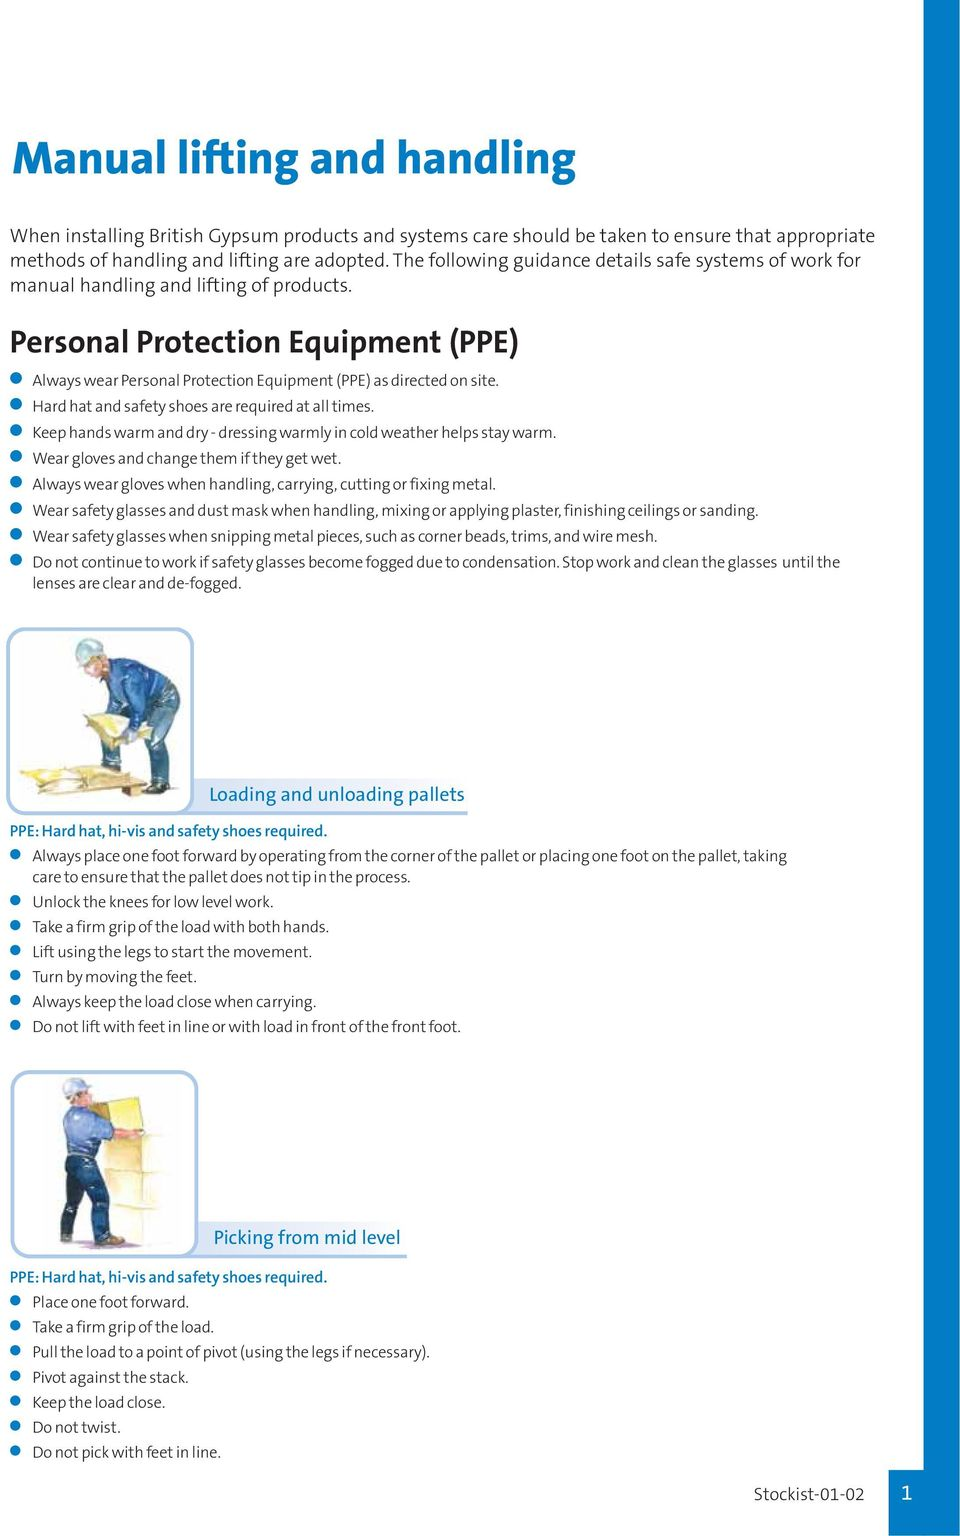 Personal Protection Equipment (PPE) Always wear Personal Protection Equipment (PPE) as directed on site. Hard hat and safety shoes are required at all times.